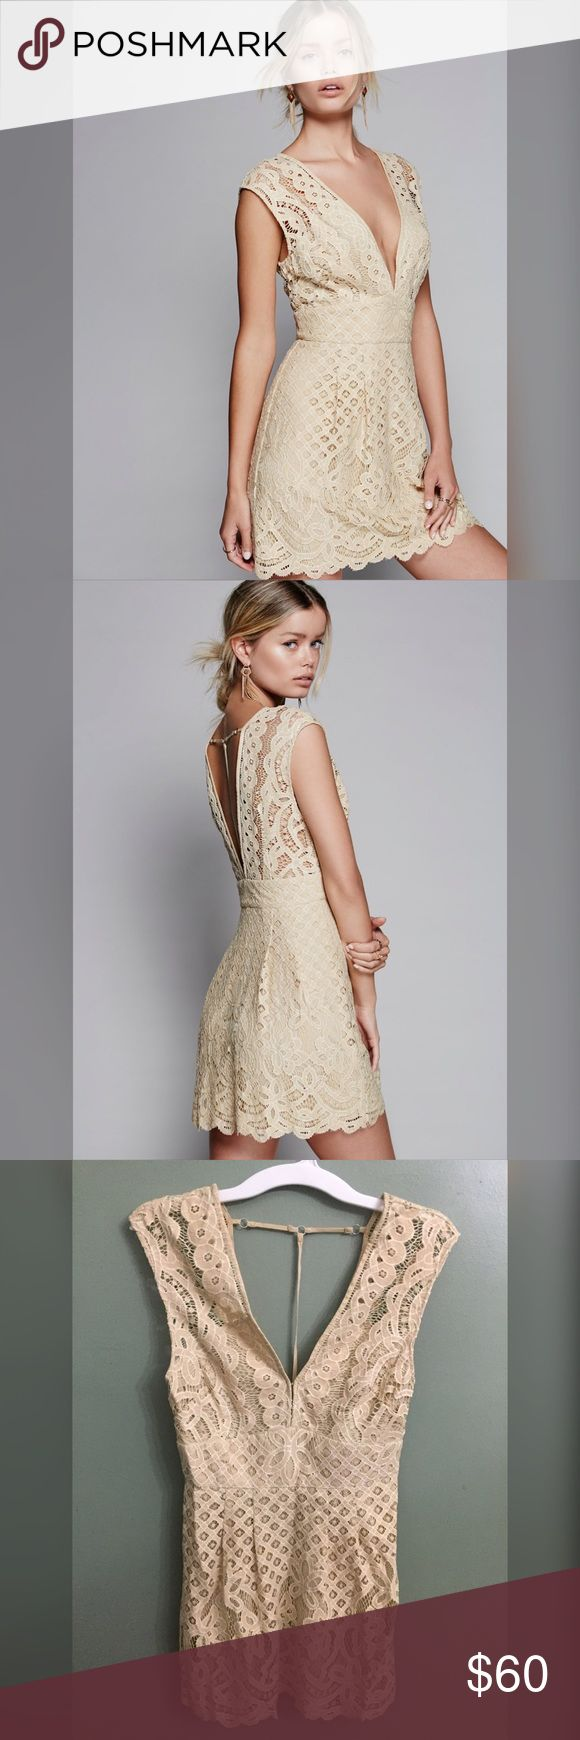 """NWT Free People """"One Million Lovers Lace"""" Dress, 6 Lovely lacey dress featuring a front and back plunging V with a cute back strappy detail. Femme fit-and-flare shape. Hidden side zipper closure. Lined. Measures approximately: Size: 6  Bust: 32 inches  Waist: 28 inches  Length: 32 inches from shoulder seam  60% Cotton 40% Nylon Color: Ivory. Hand Wash Cold Free People Dresses Mini"""